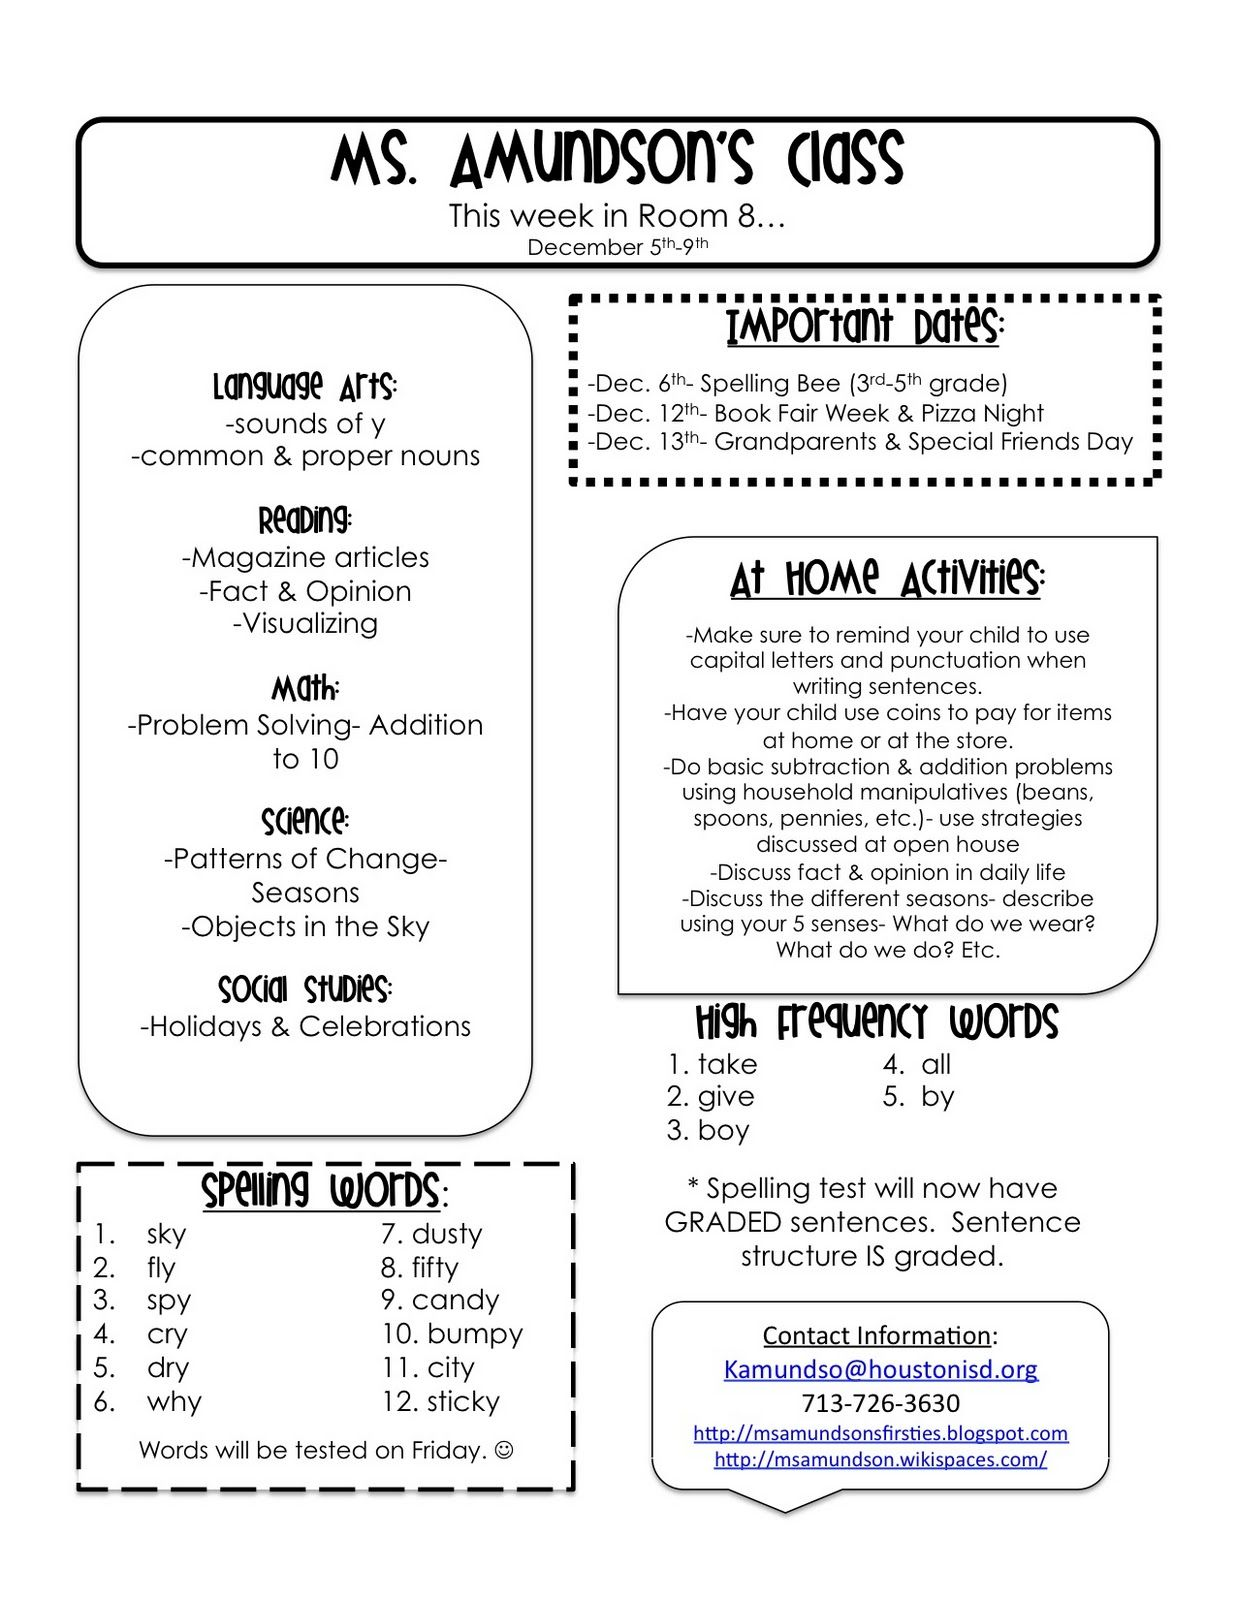 Weekly Newsletter Templates For Teachers | Third Grade | Pinterest ...